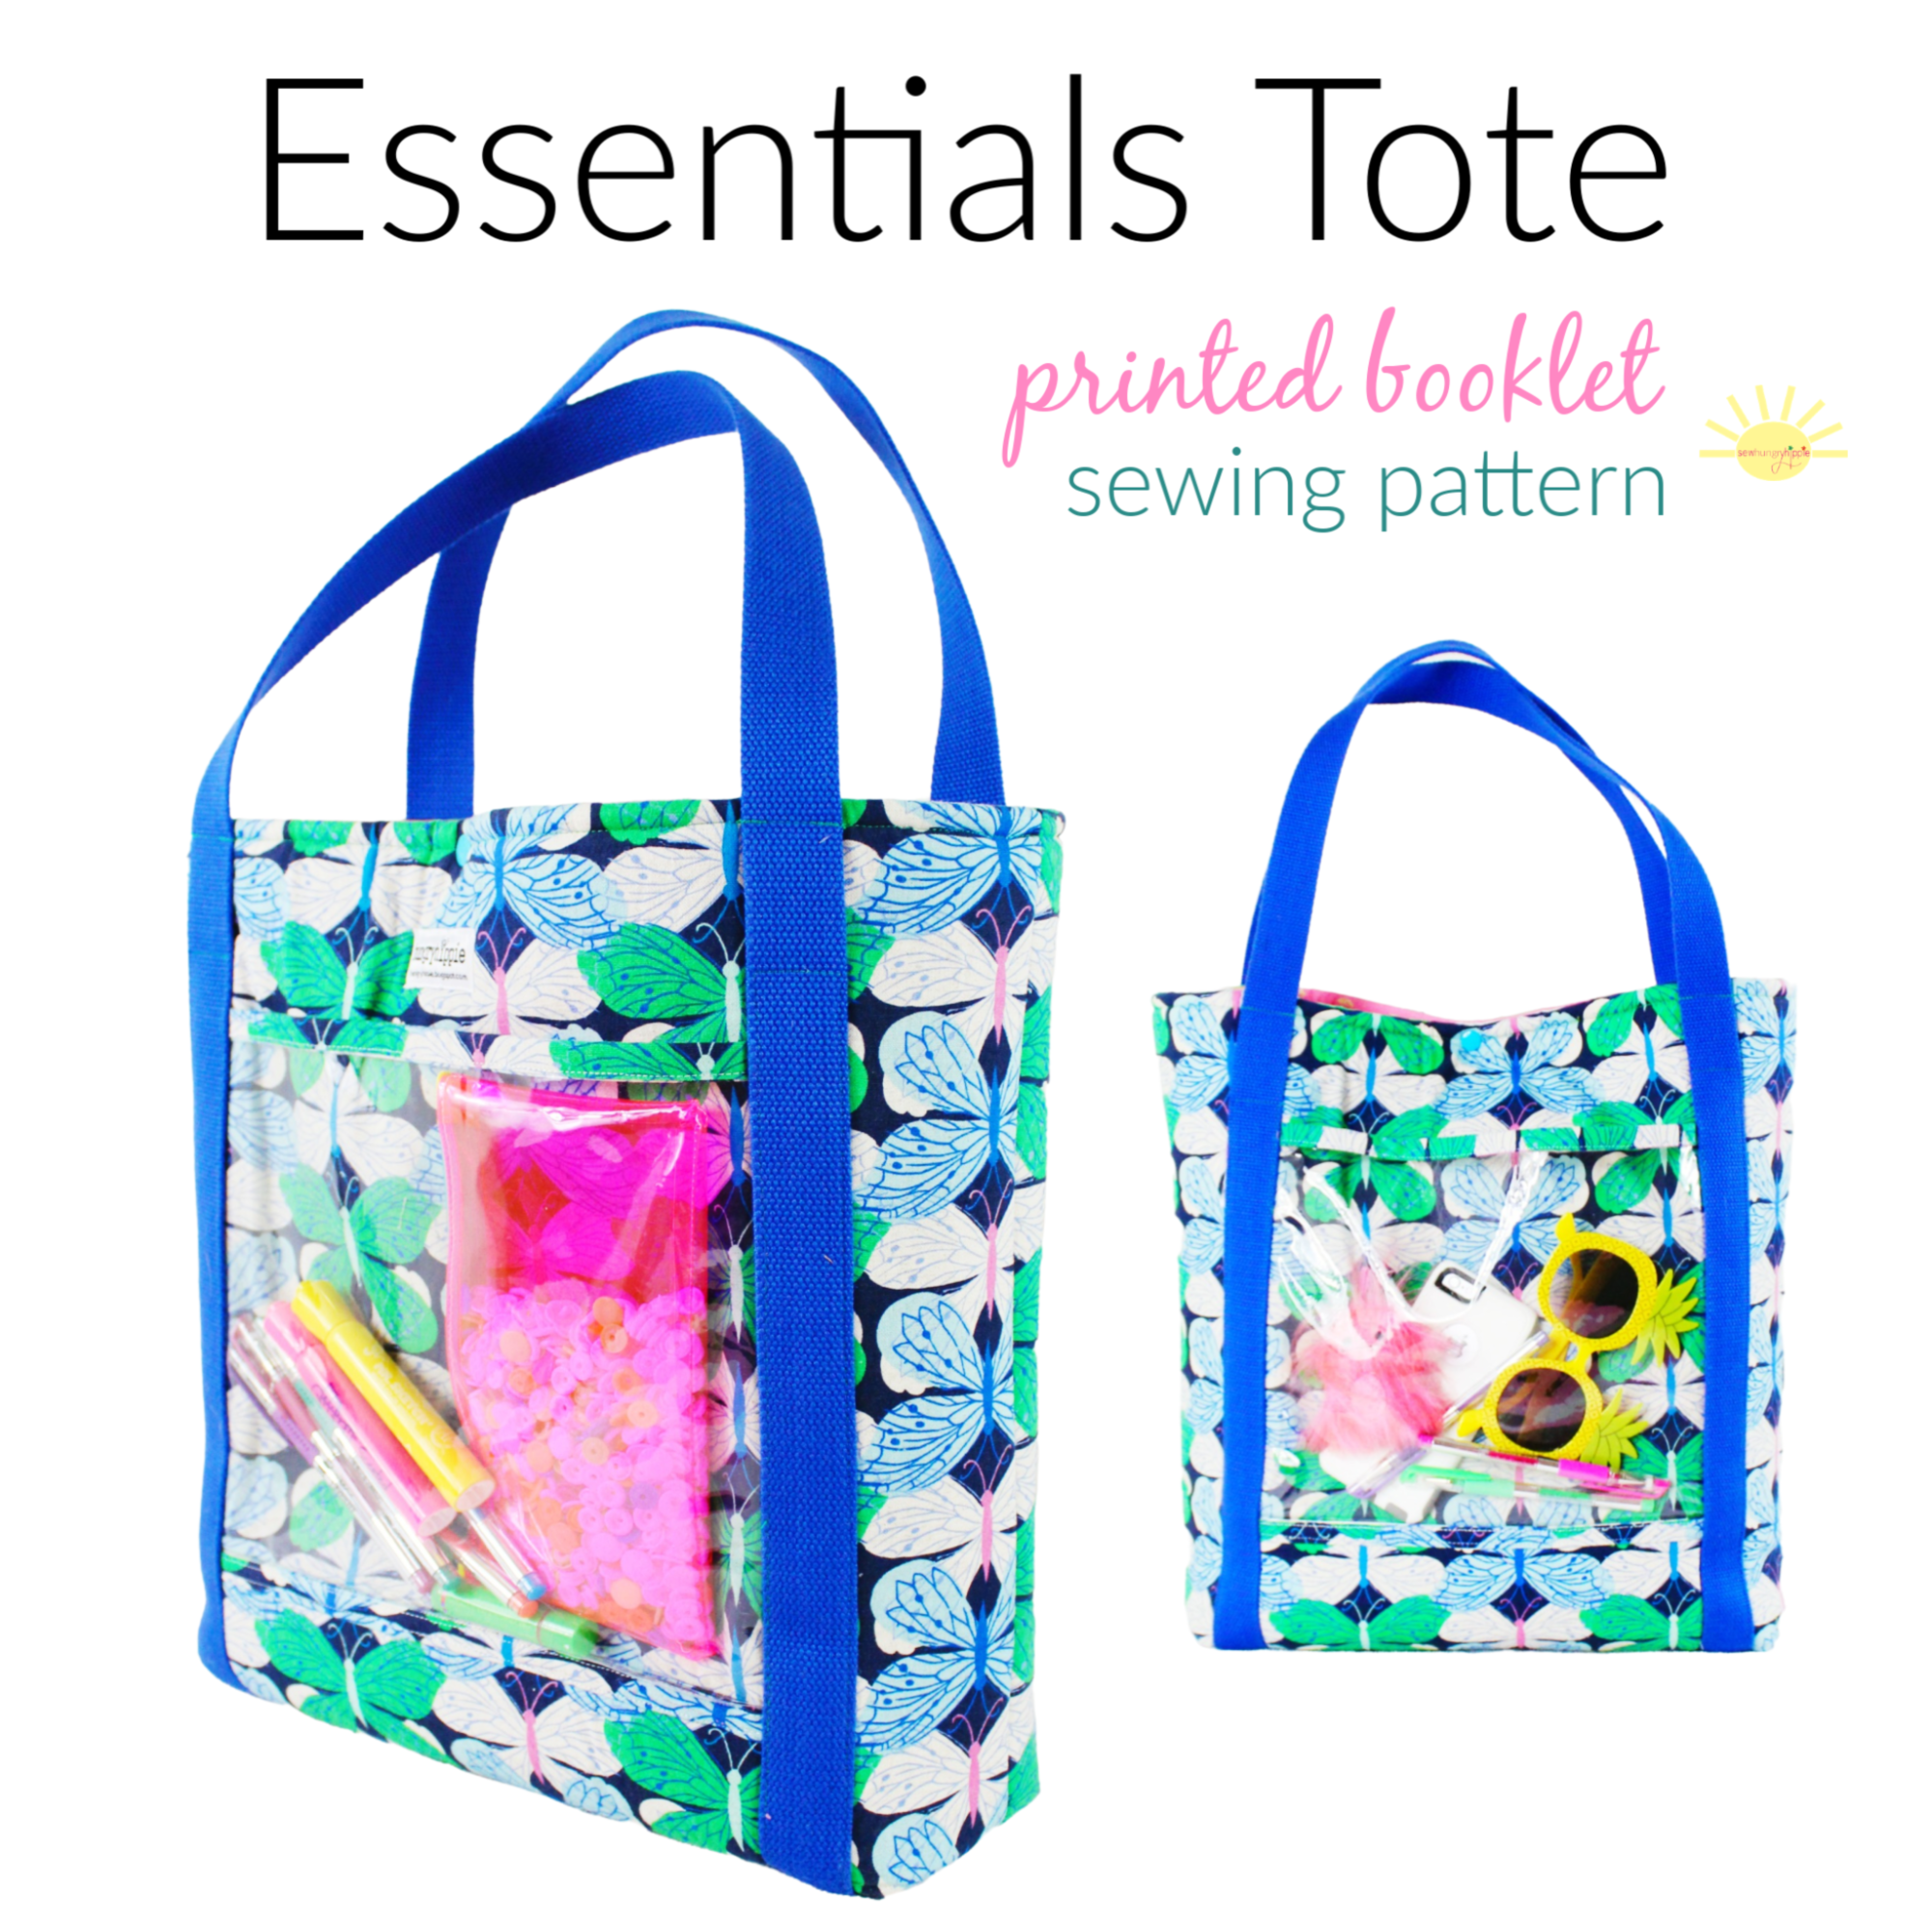 The Essentials Tote printed pattern